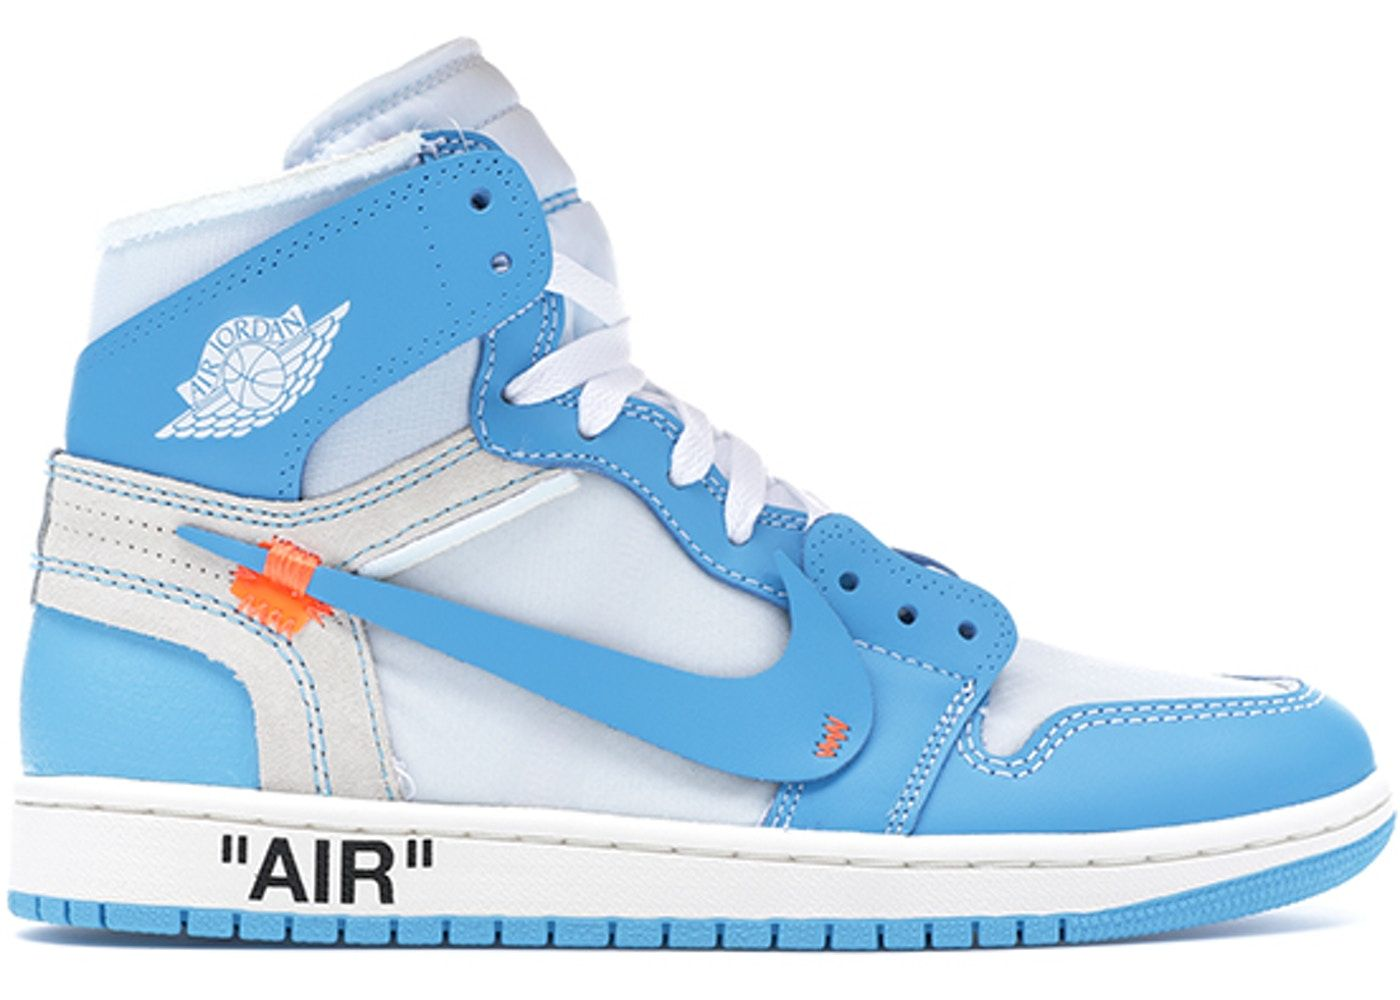 I Realy Want These Sneakers Men Fashion Jordan 1 Retro High Sneakers